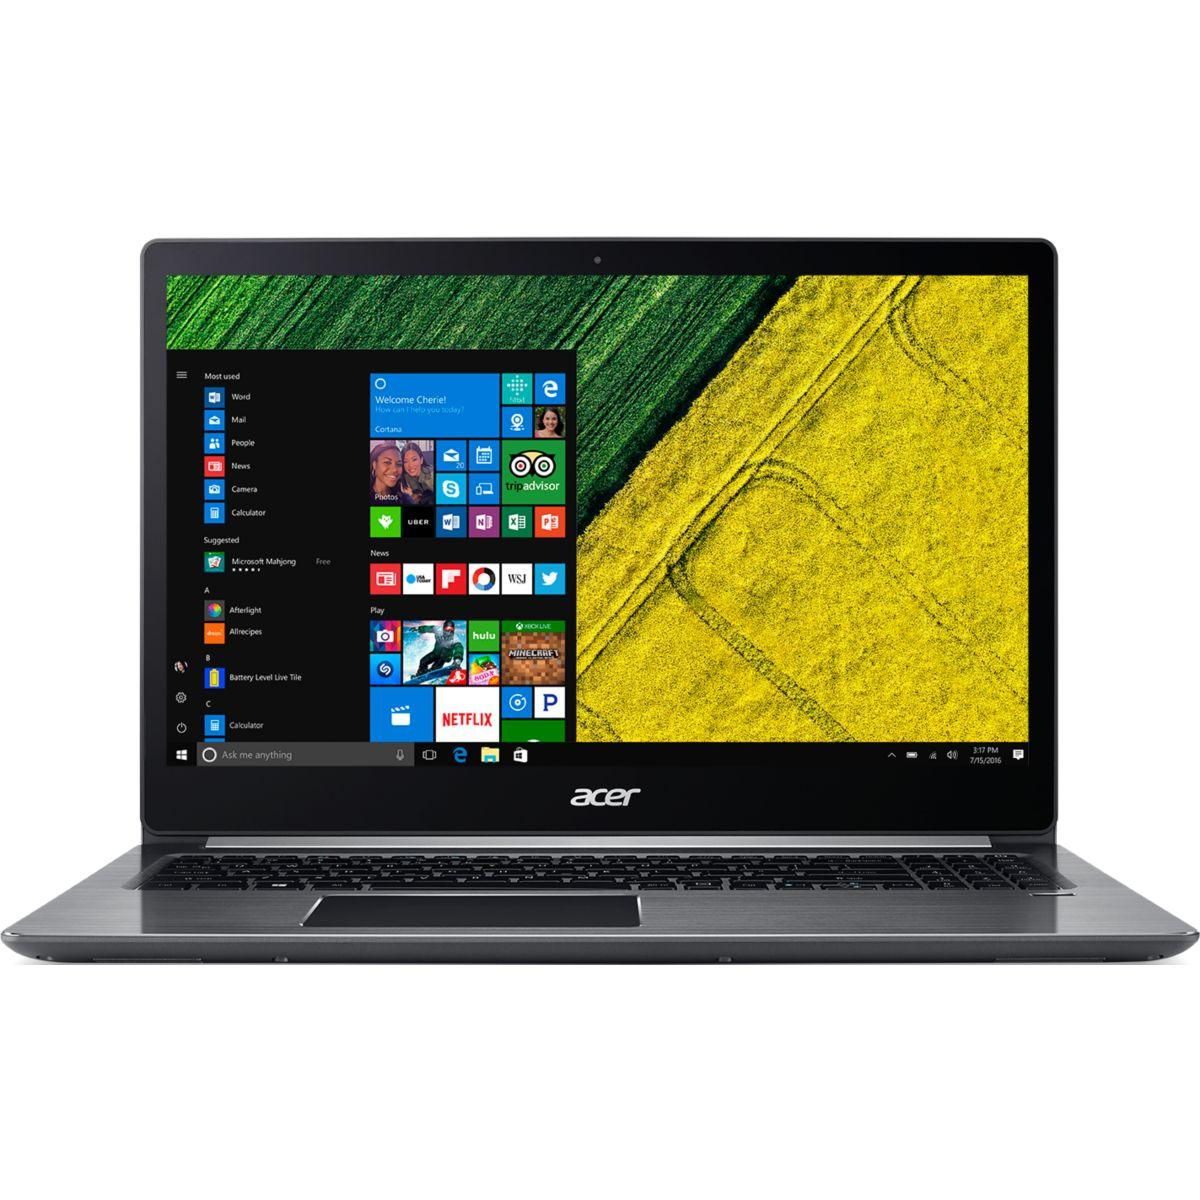 Portable acer swift sf315-51g-87hr - 2% de remise imm�diate avec le code : wd2 (photo)